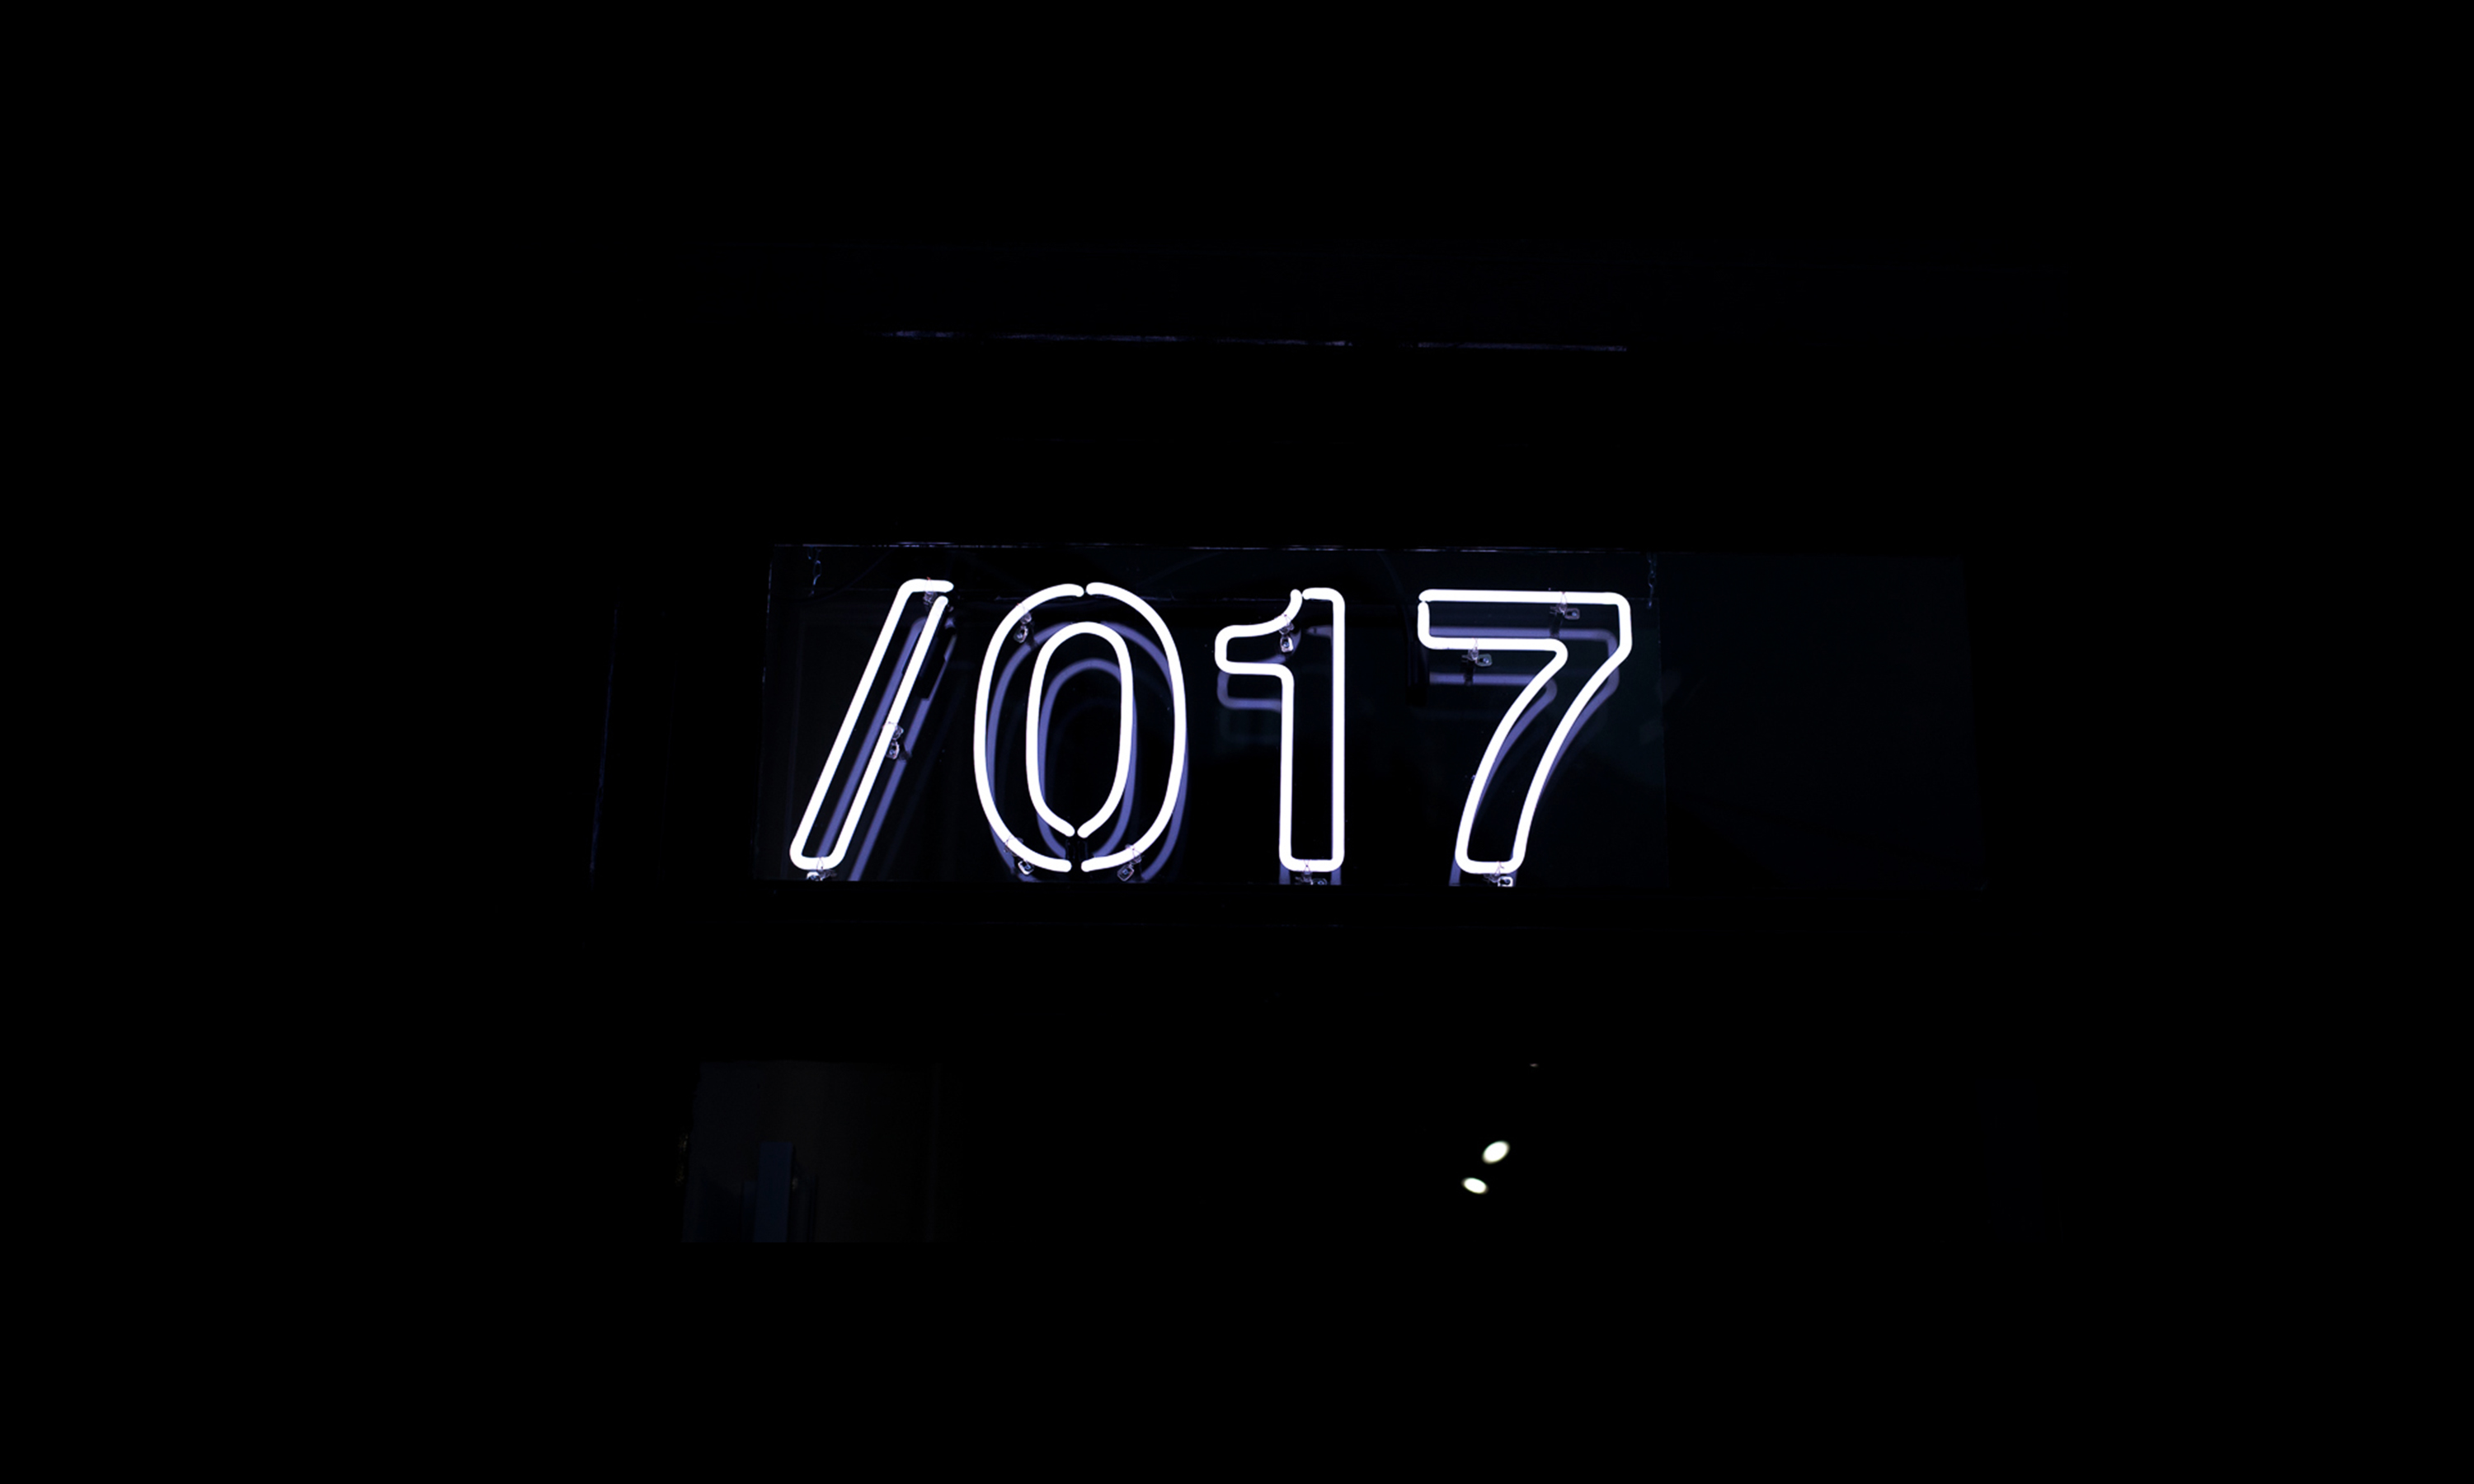 017 Branding on Neon Sign in Gastown, Vancouver